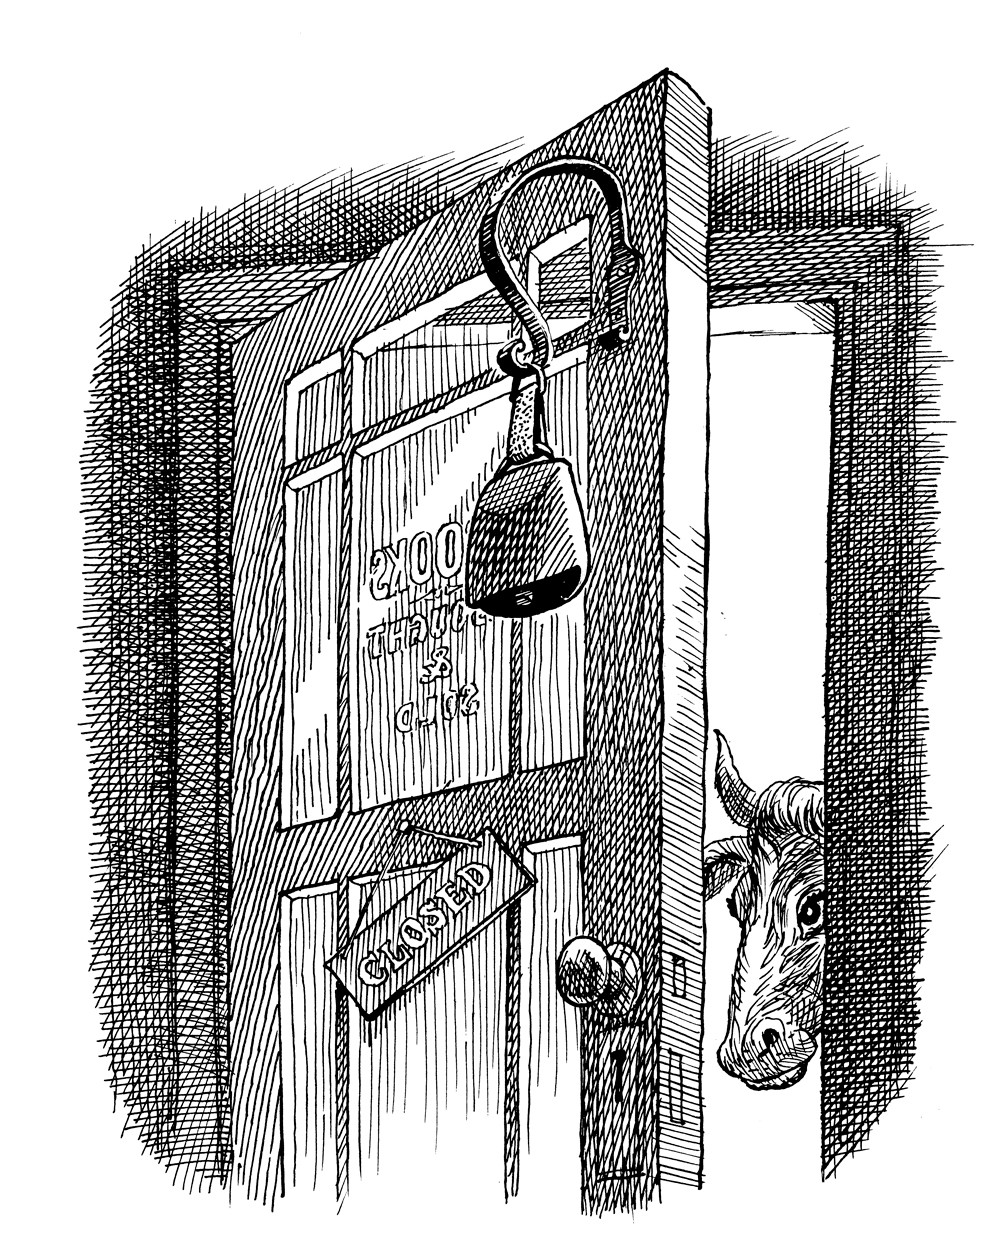 B. Lodge illustration - Glynn Frewer, on second-hand bookselling